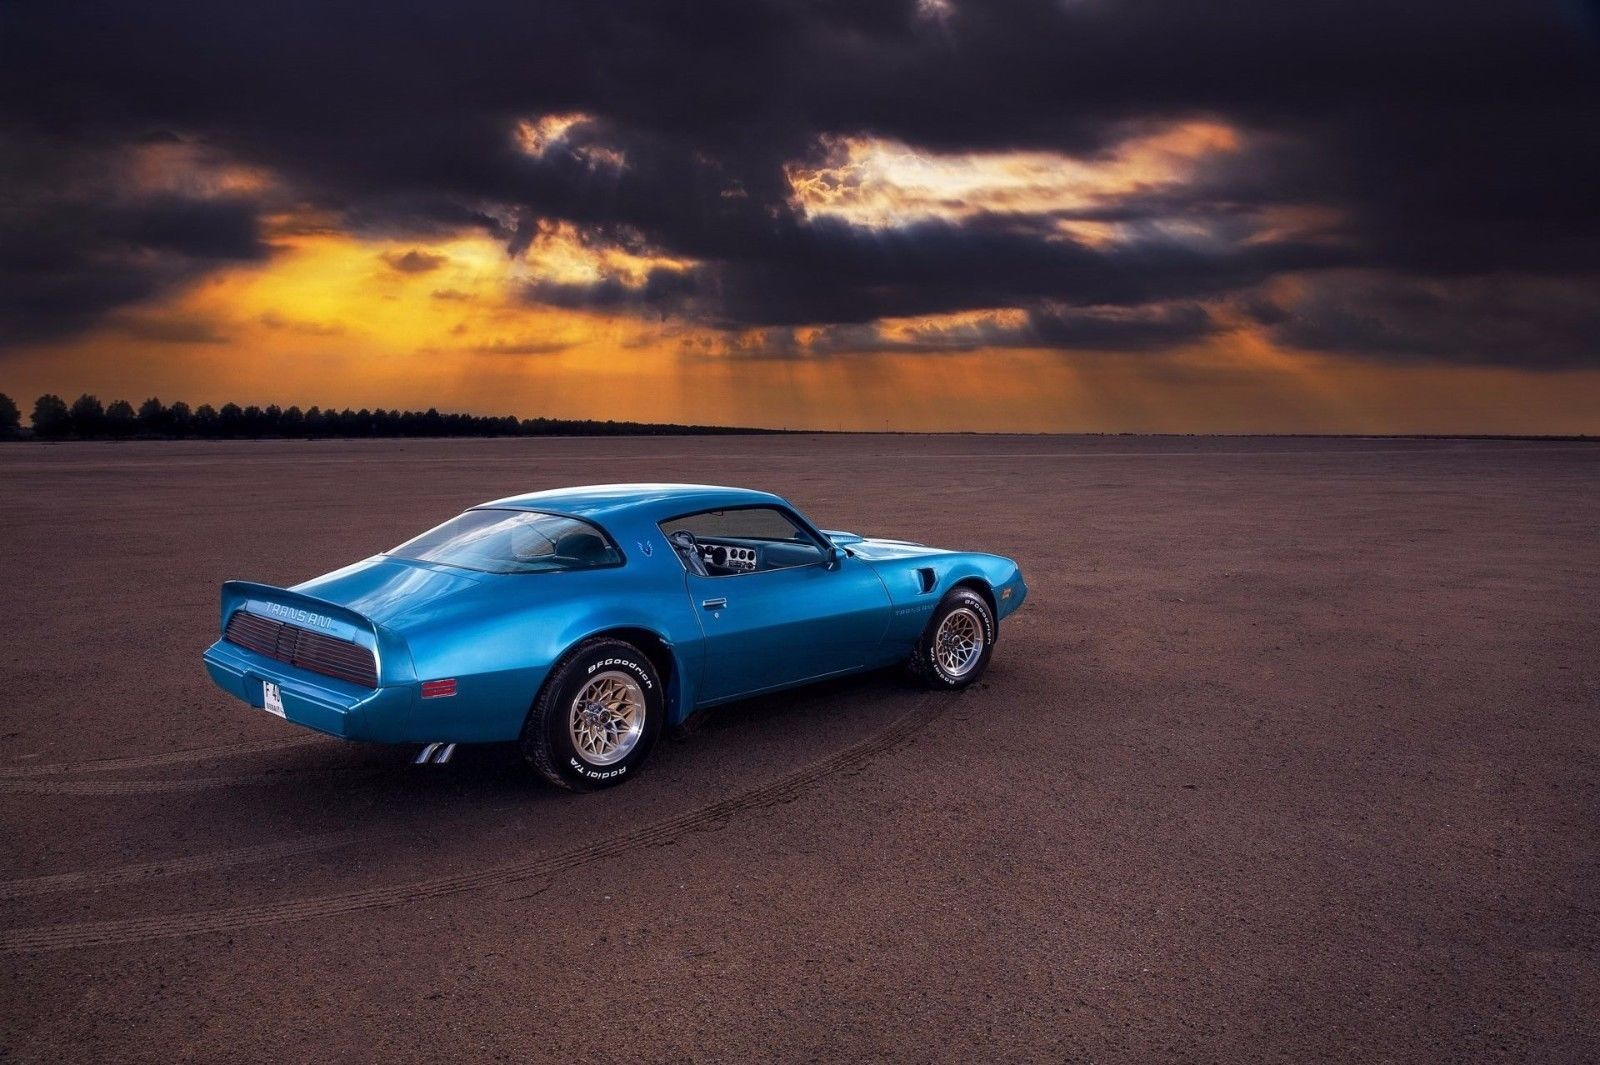 Primary image for 1979 Pontiac Trans Am 24 X 36 INCH POSTER, classic muscle car, blue, rear